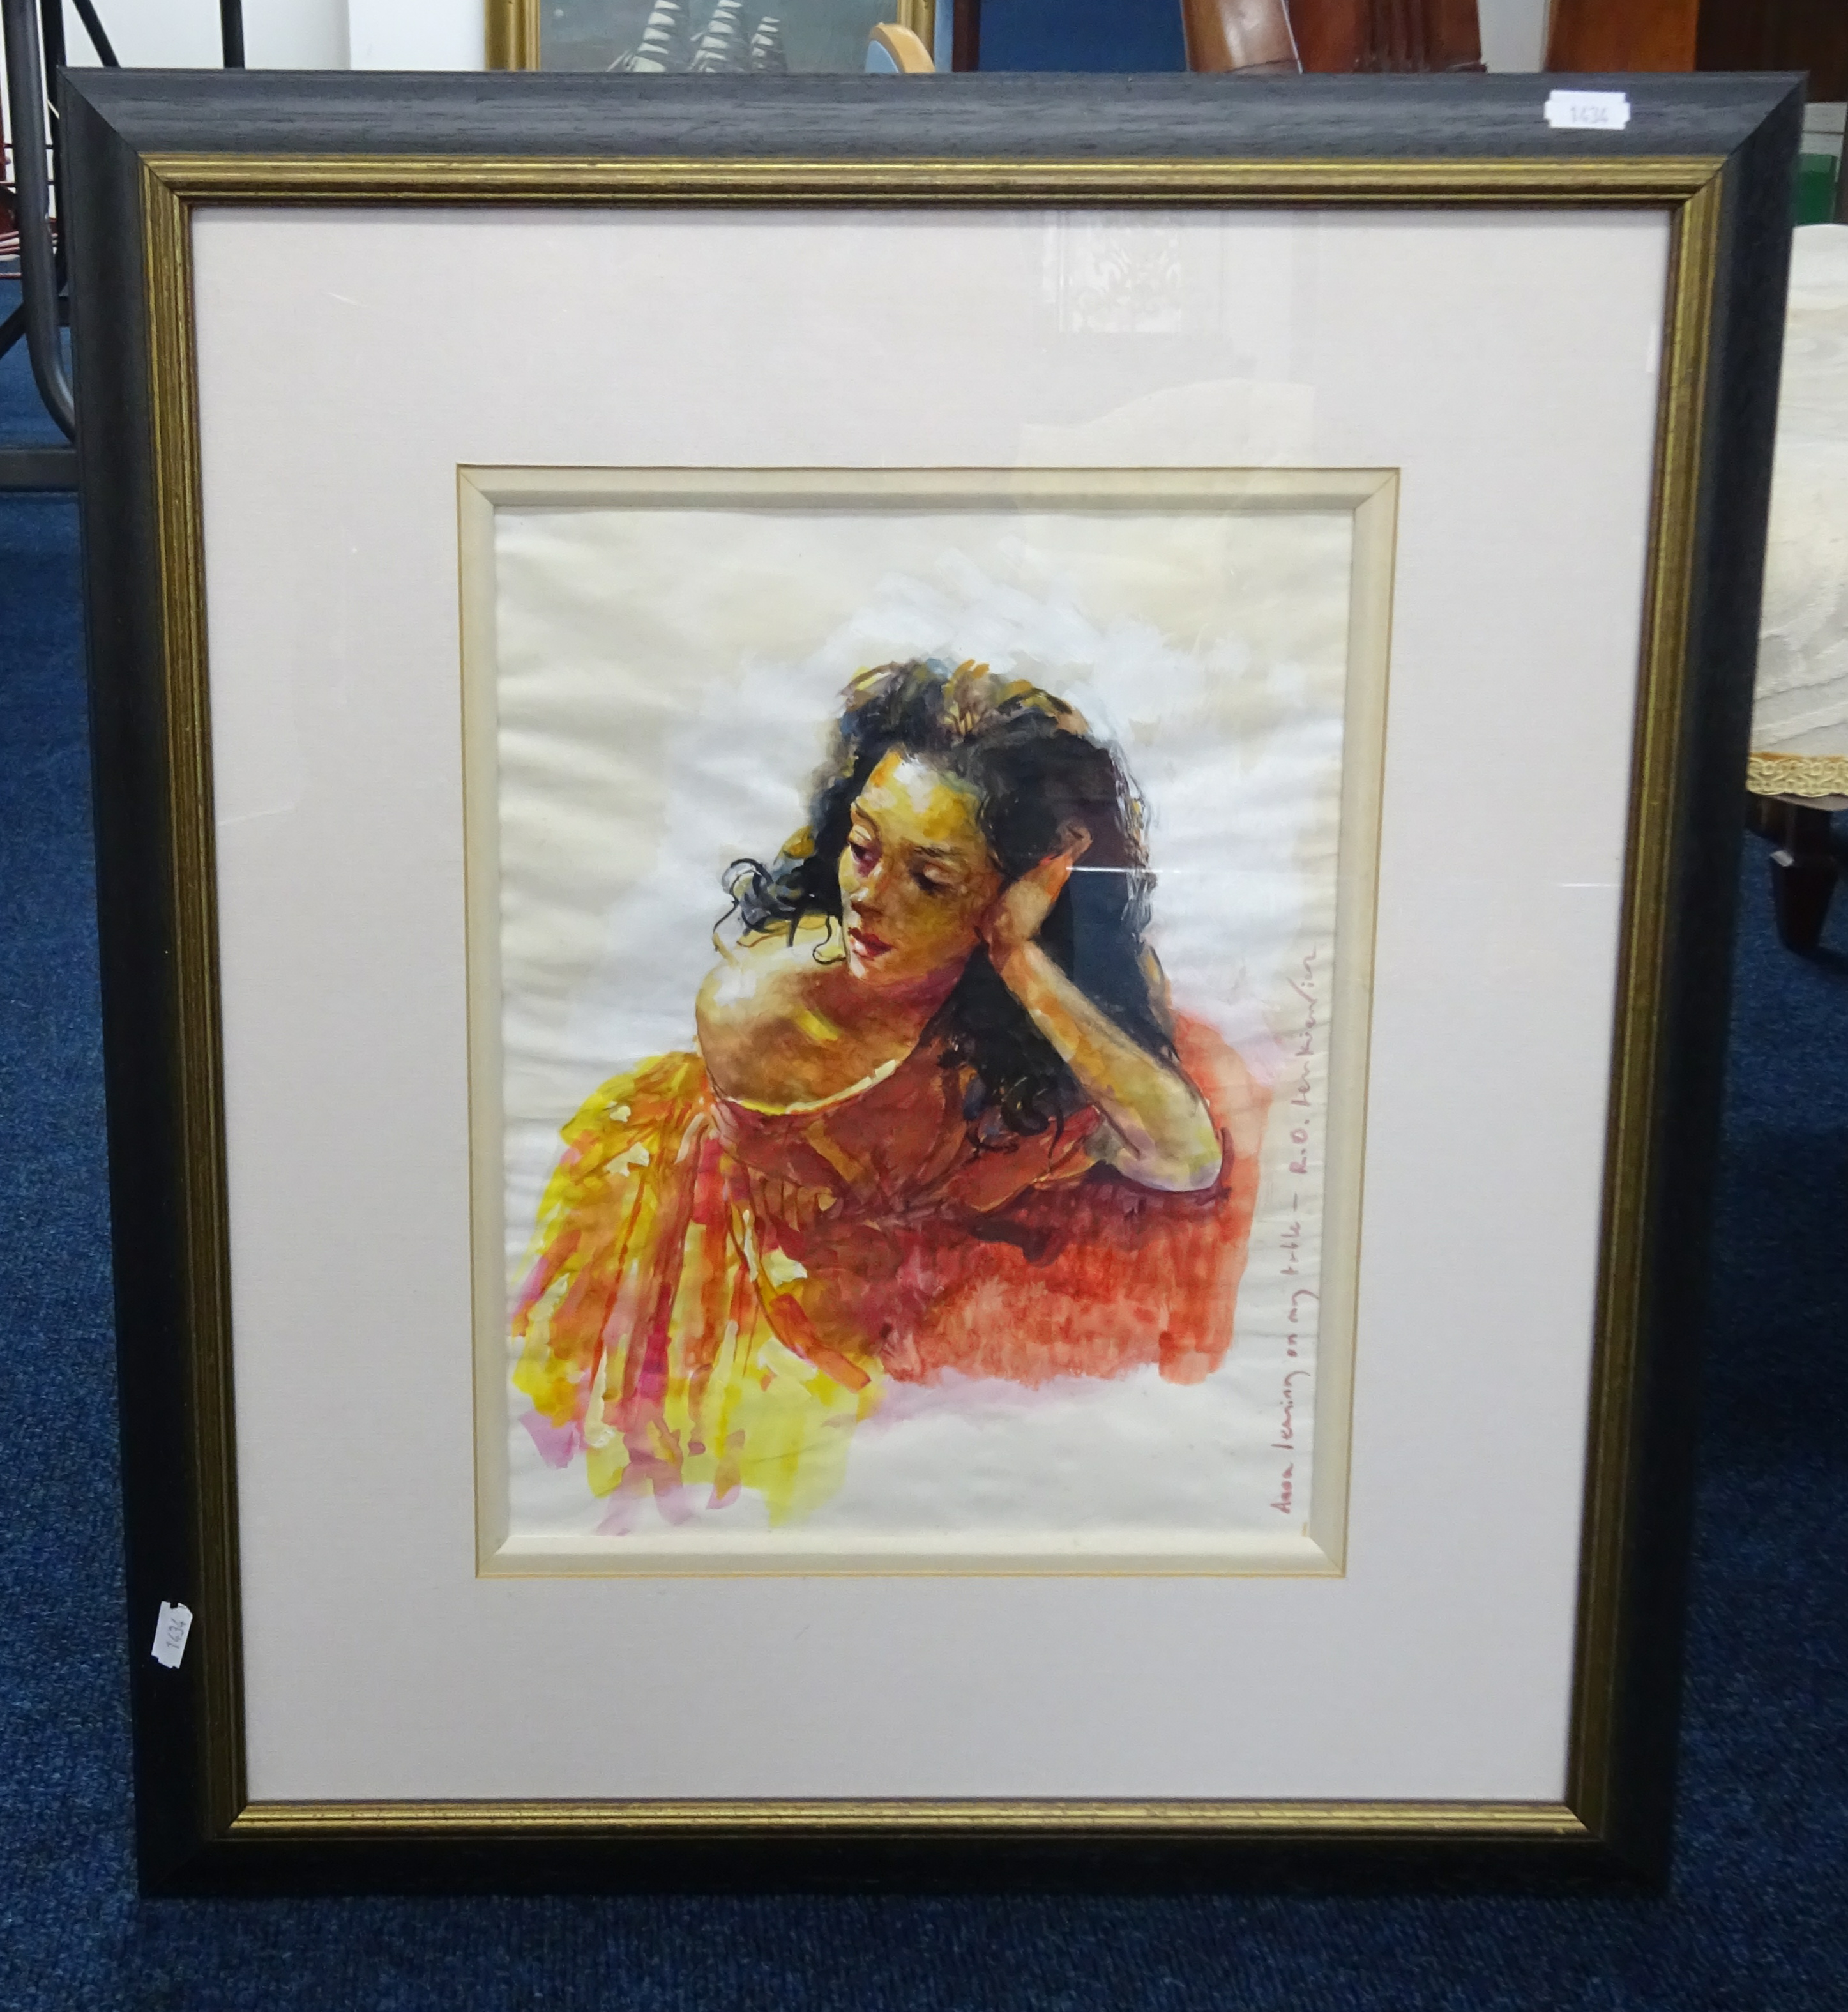 Lot 052 - Robert Lenkiewicz (1941-2002) watercolour 'Anna leaning on my table', signed and titled to image